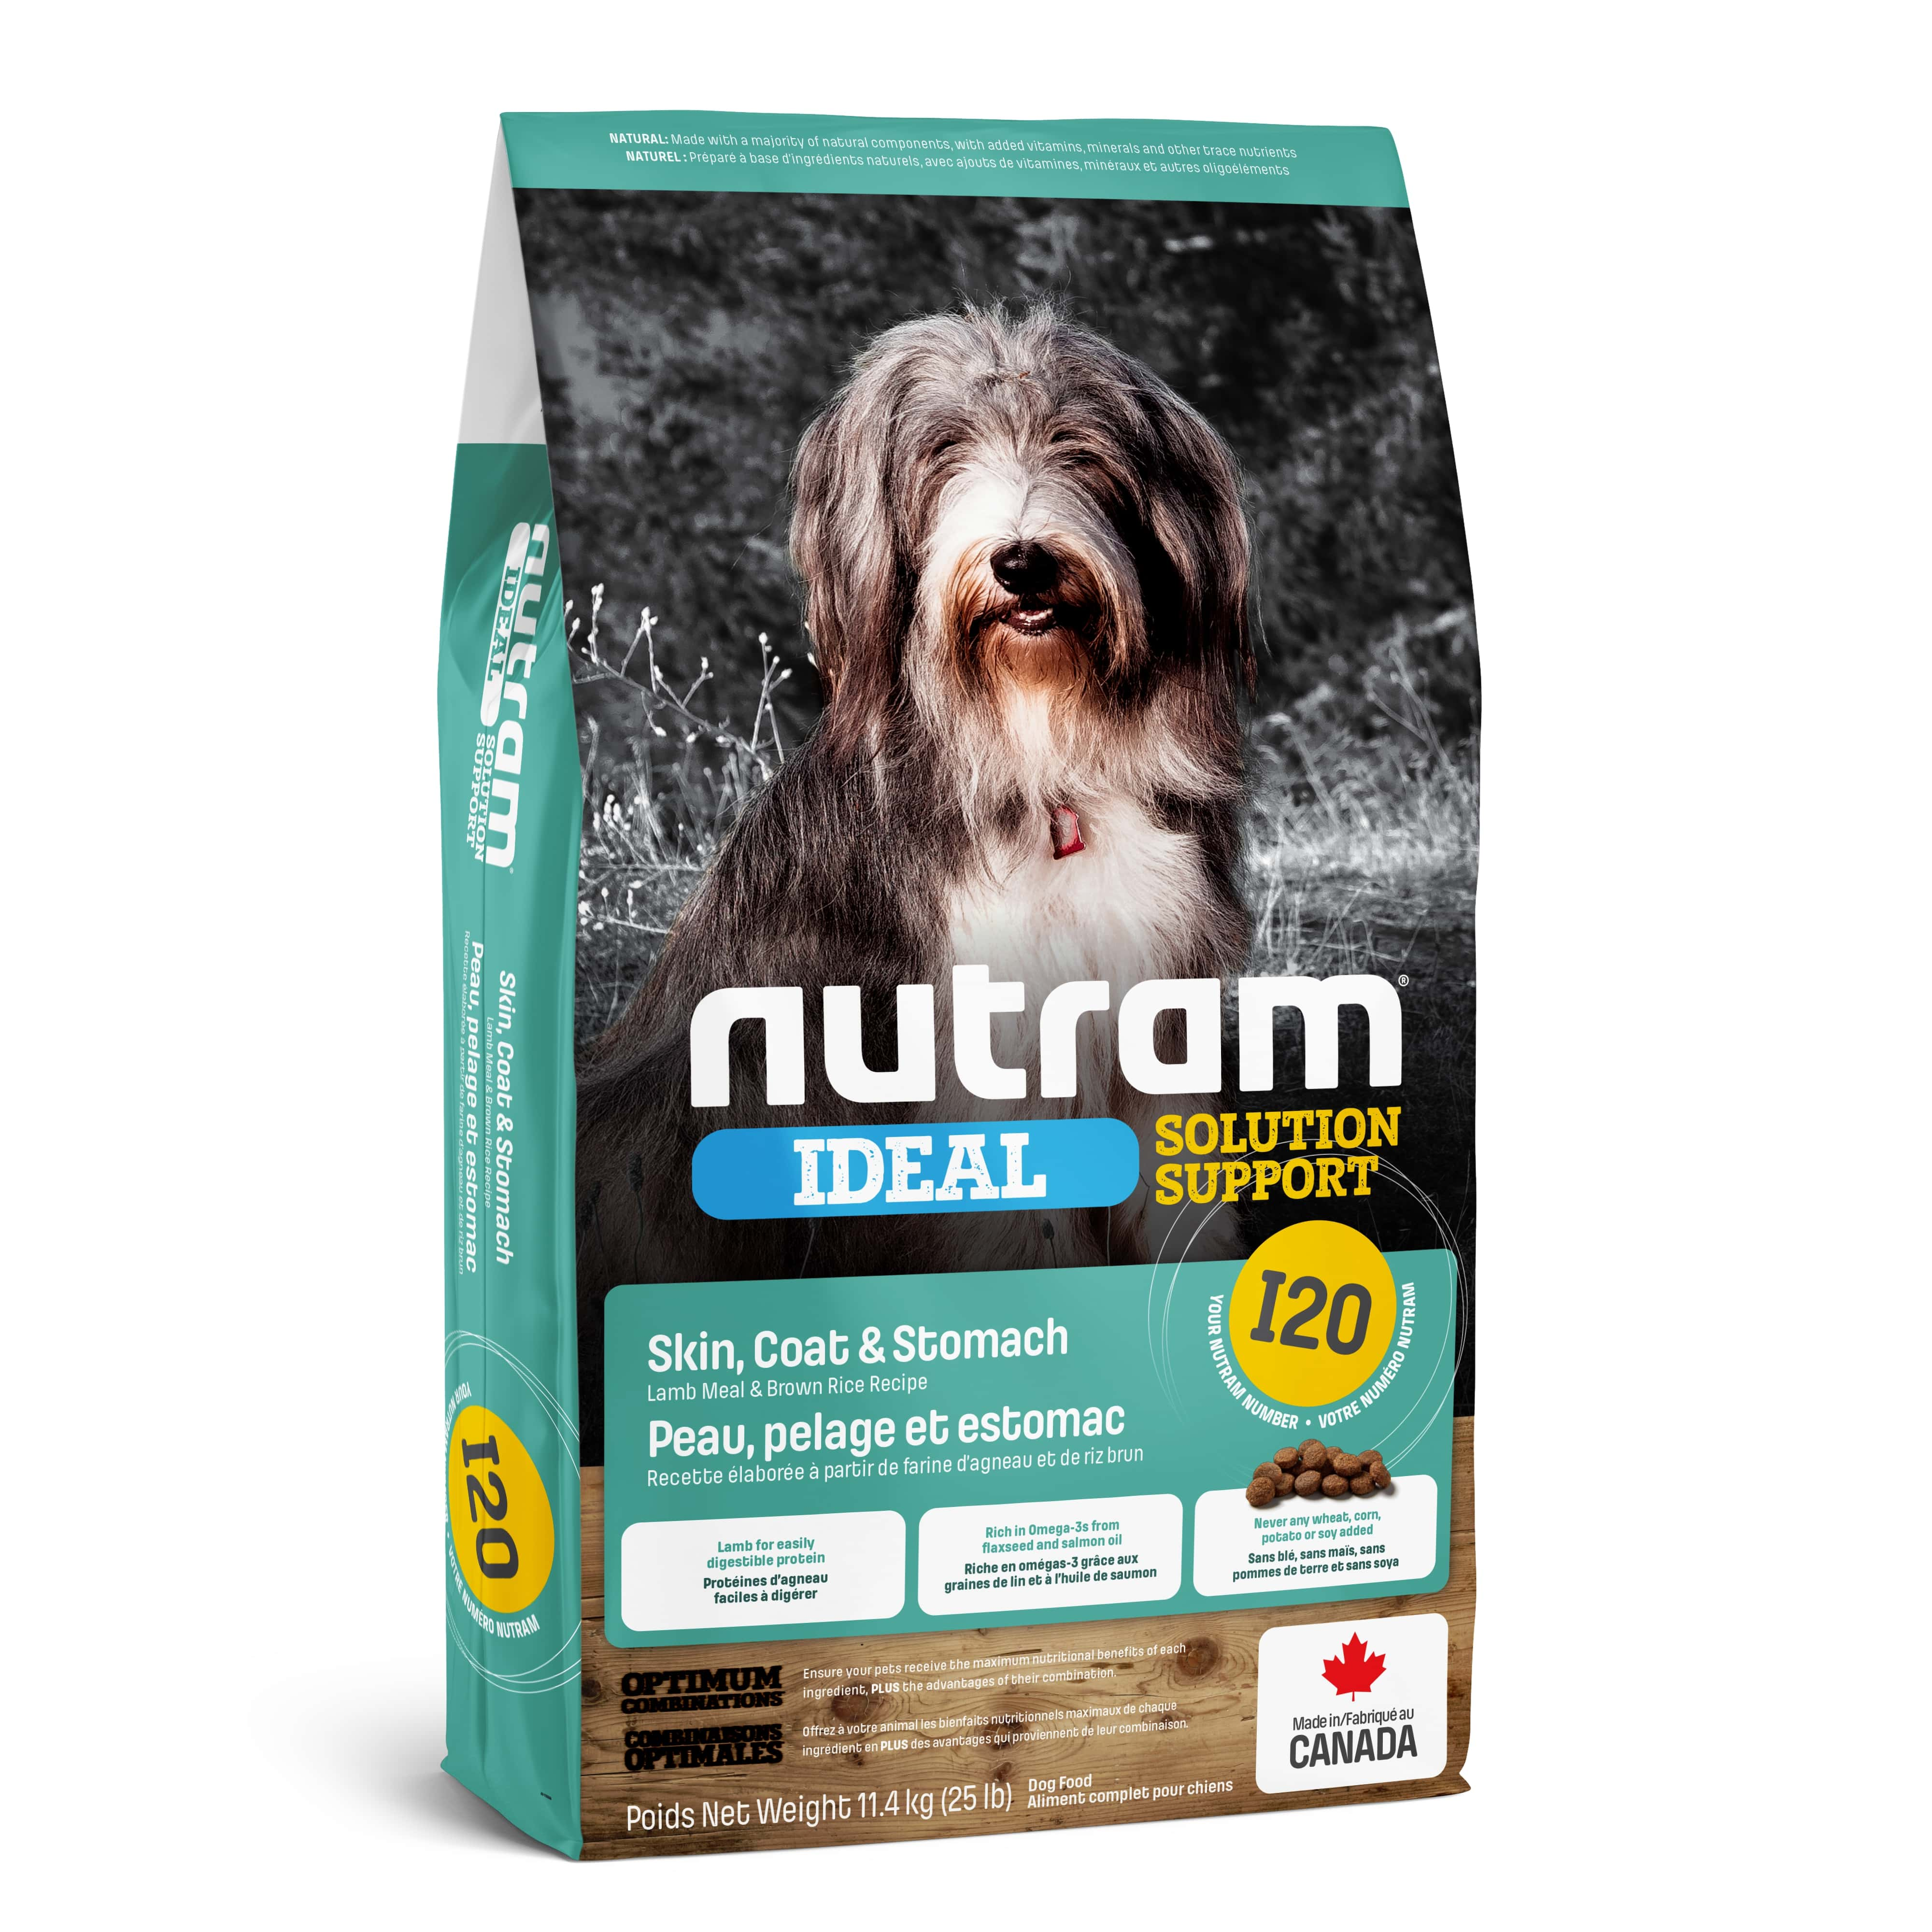 I20 Nutram Ideal Solution Support® Sensitive Dog Natural Food